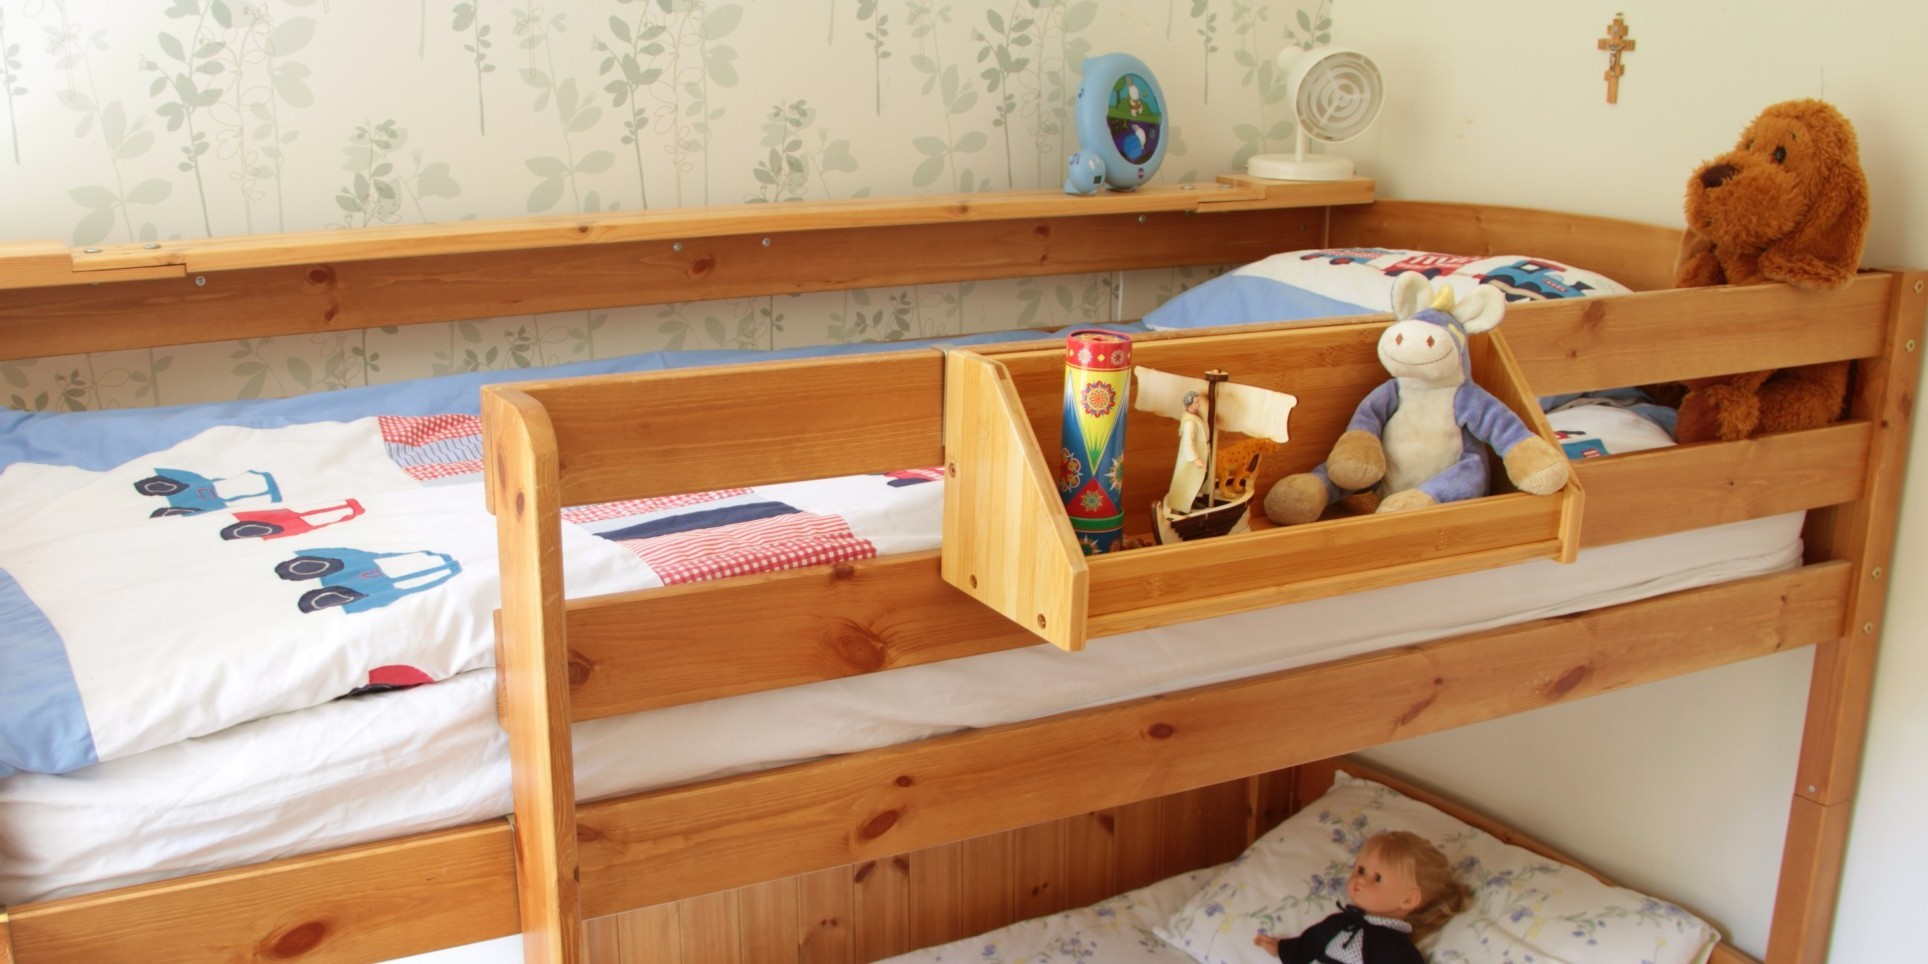 Bed Hanging Toys Shelf Bamboo Children S Furniture